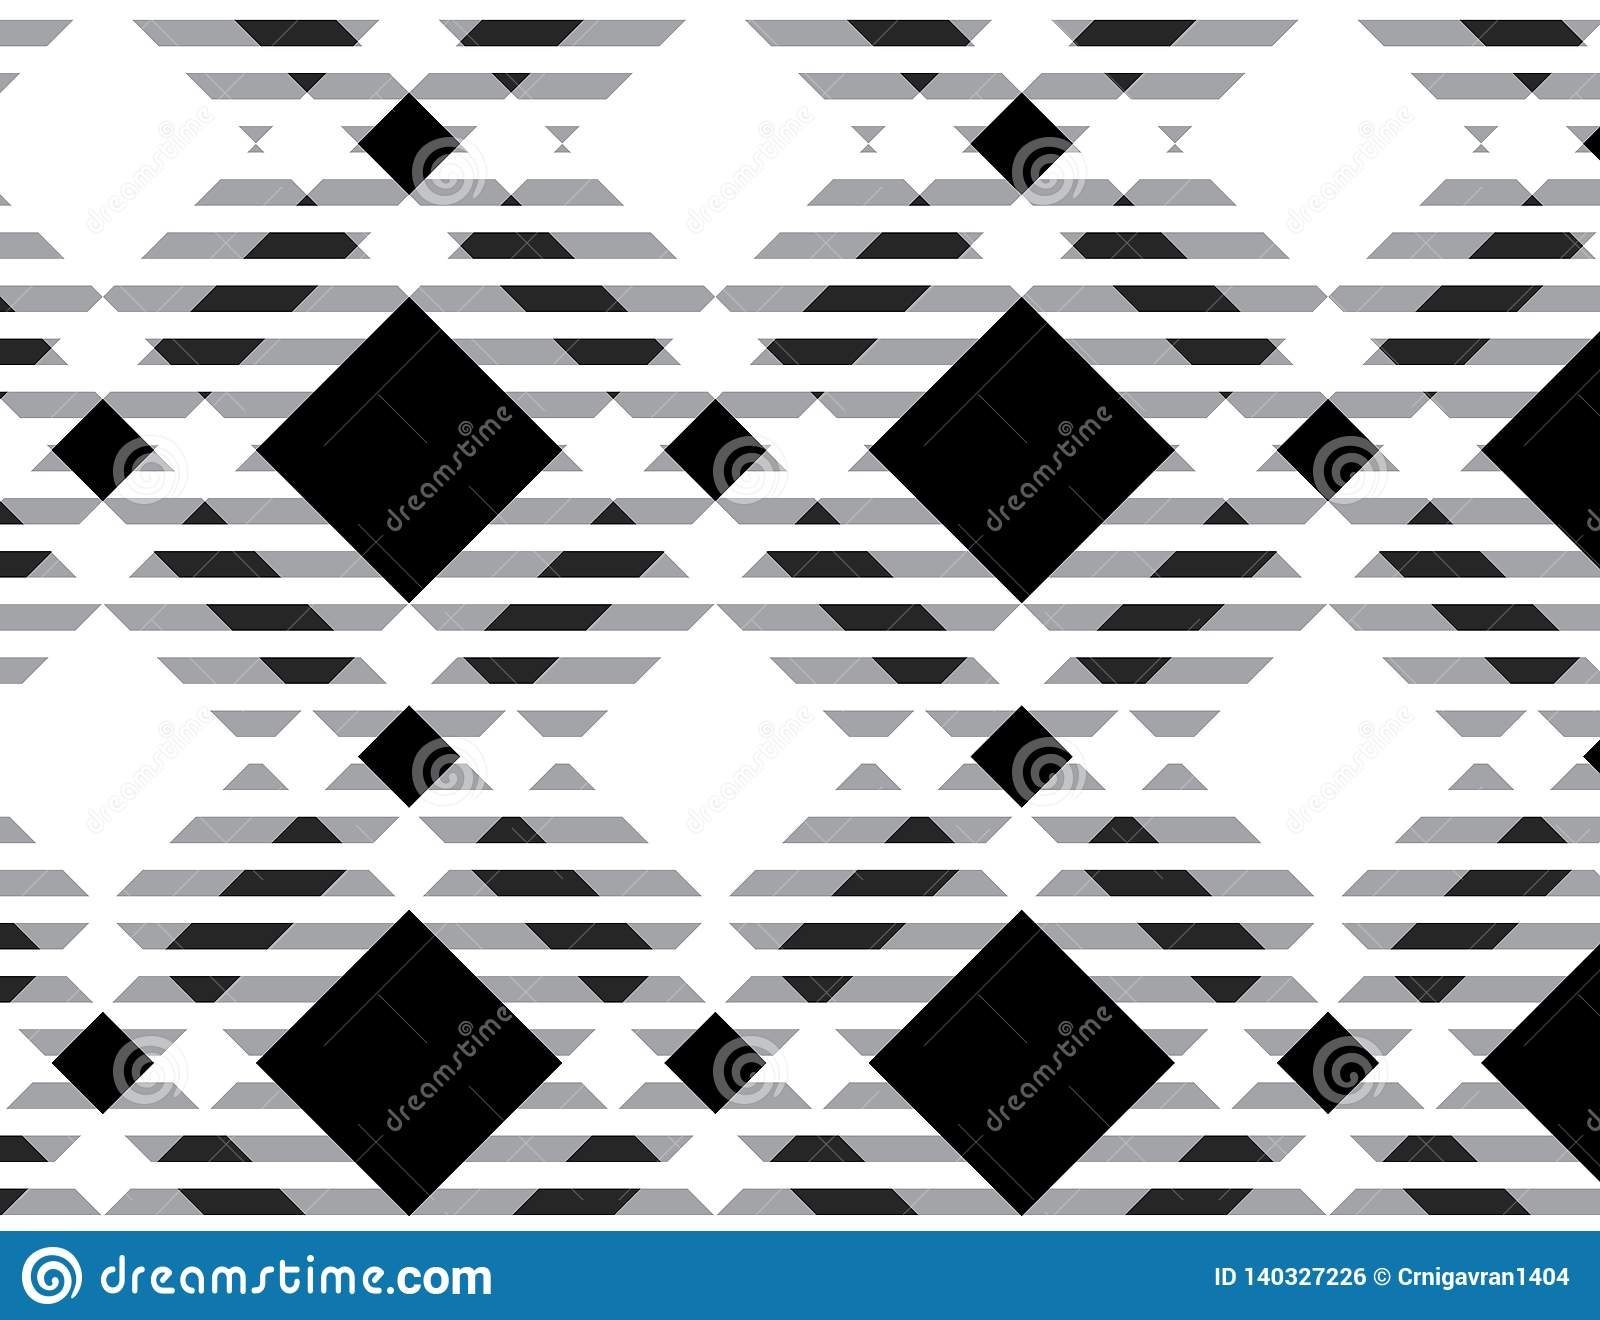 Black and white tartan plaid pattern.- Vector illustration.-EPS-10